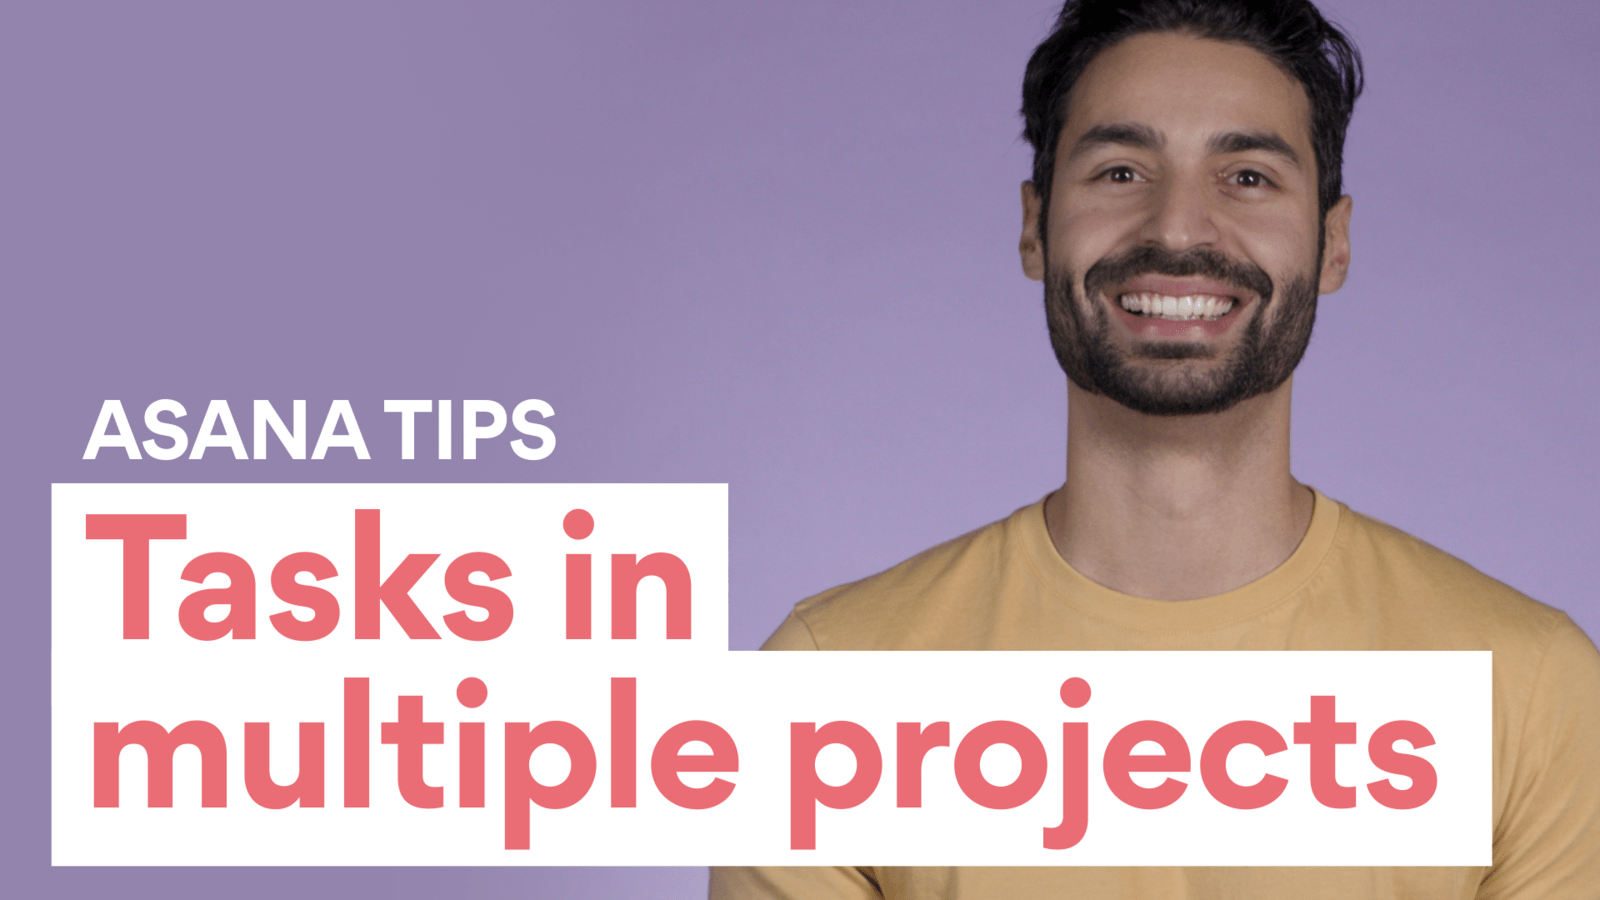 Add tasks to multiple projects